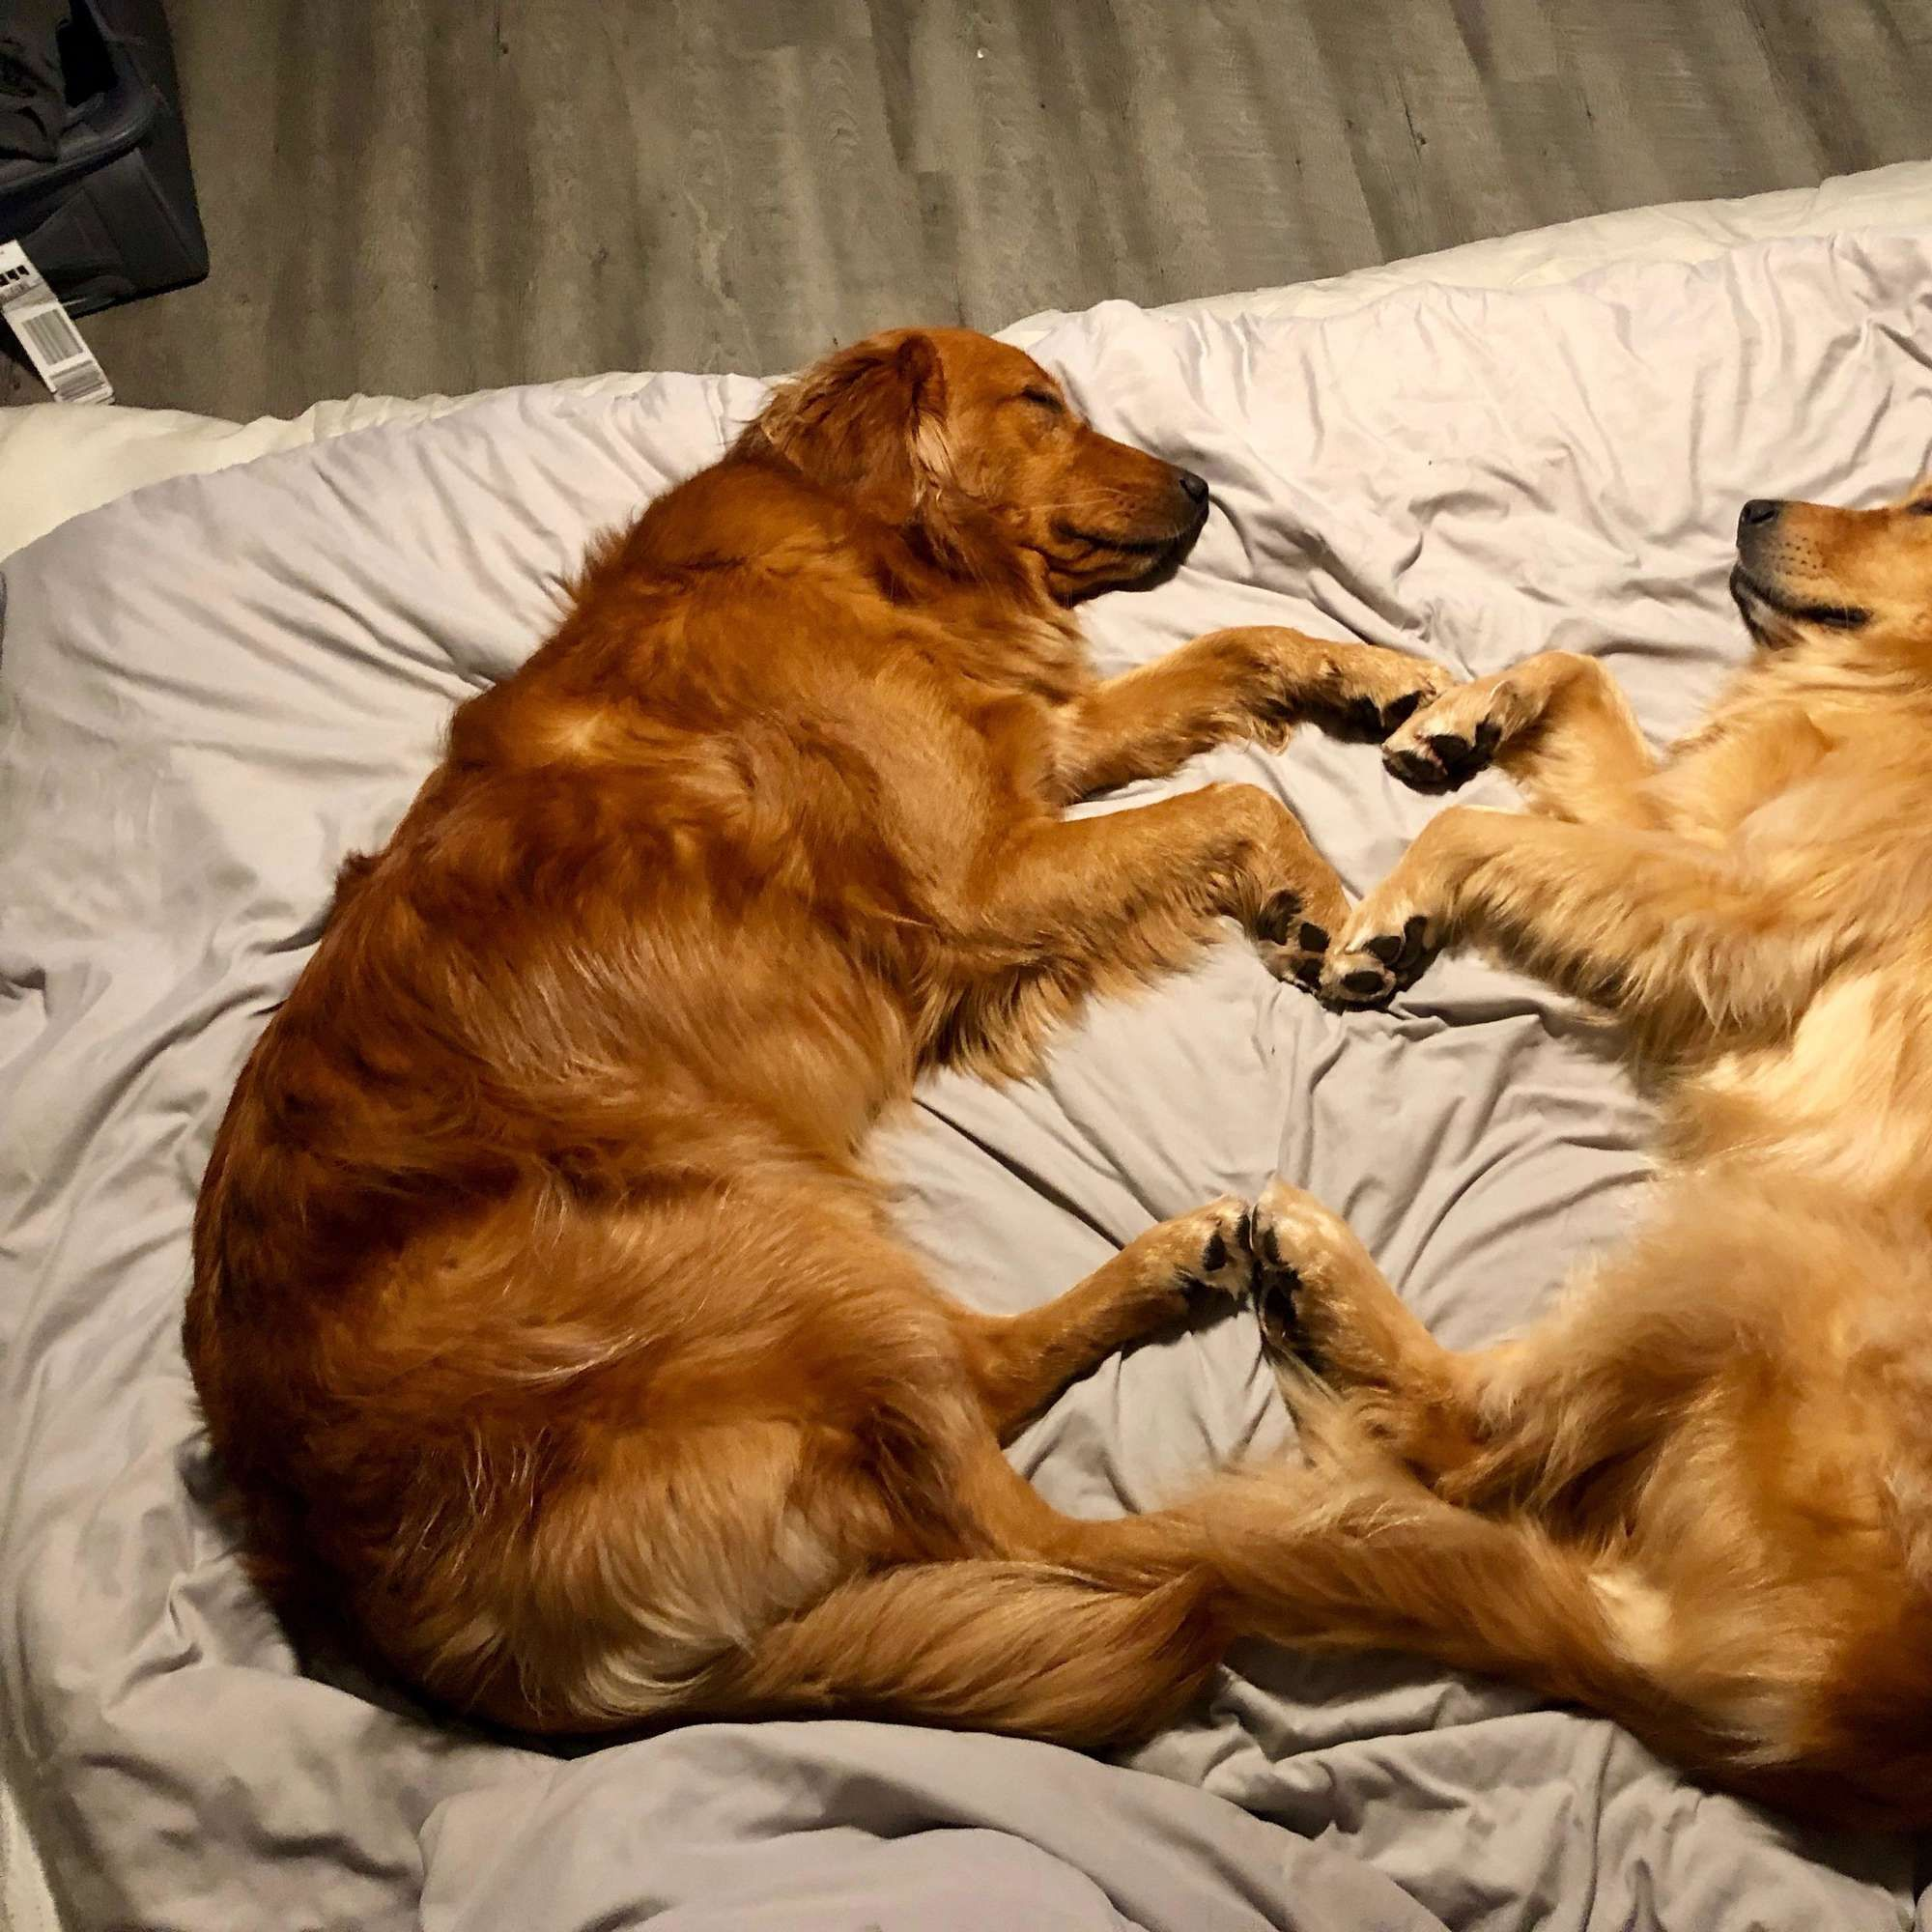 Dogs Have Sleepover And Fall Asleep Together In The Cutest Way